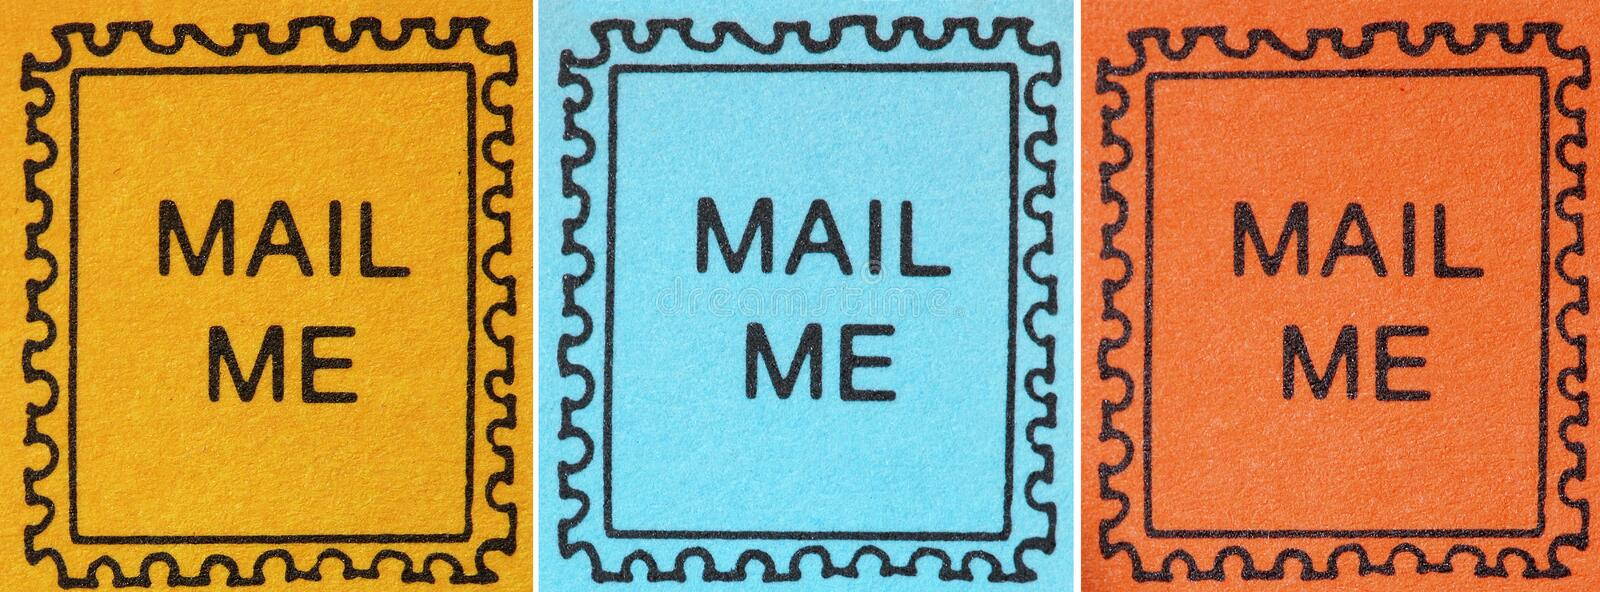 Retro Postmark Stamp Icons. Three stamp images with Mail Me in the center. Highly detailed images in yellow, blue and orange, with a distinct paper texture stock photo